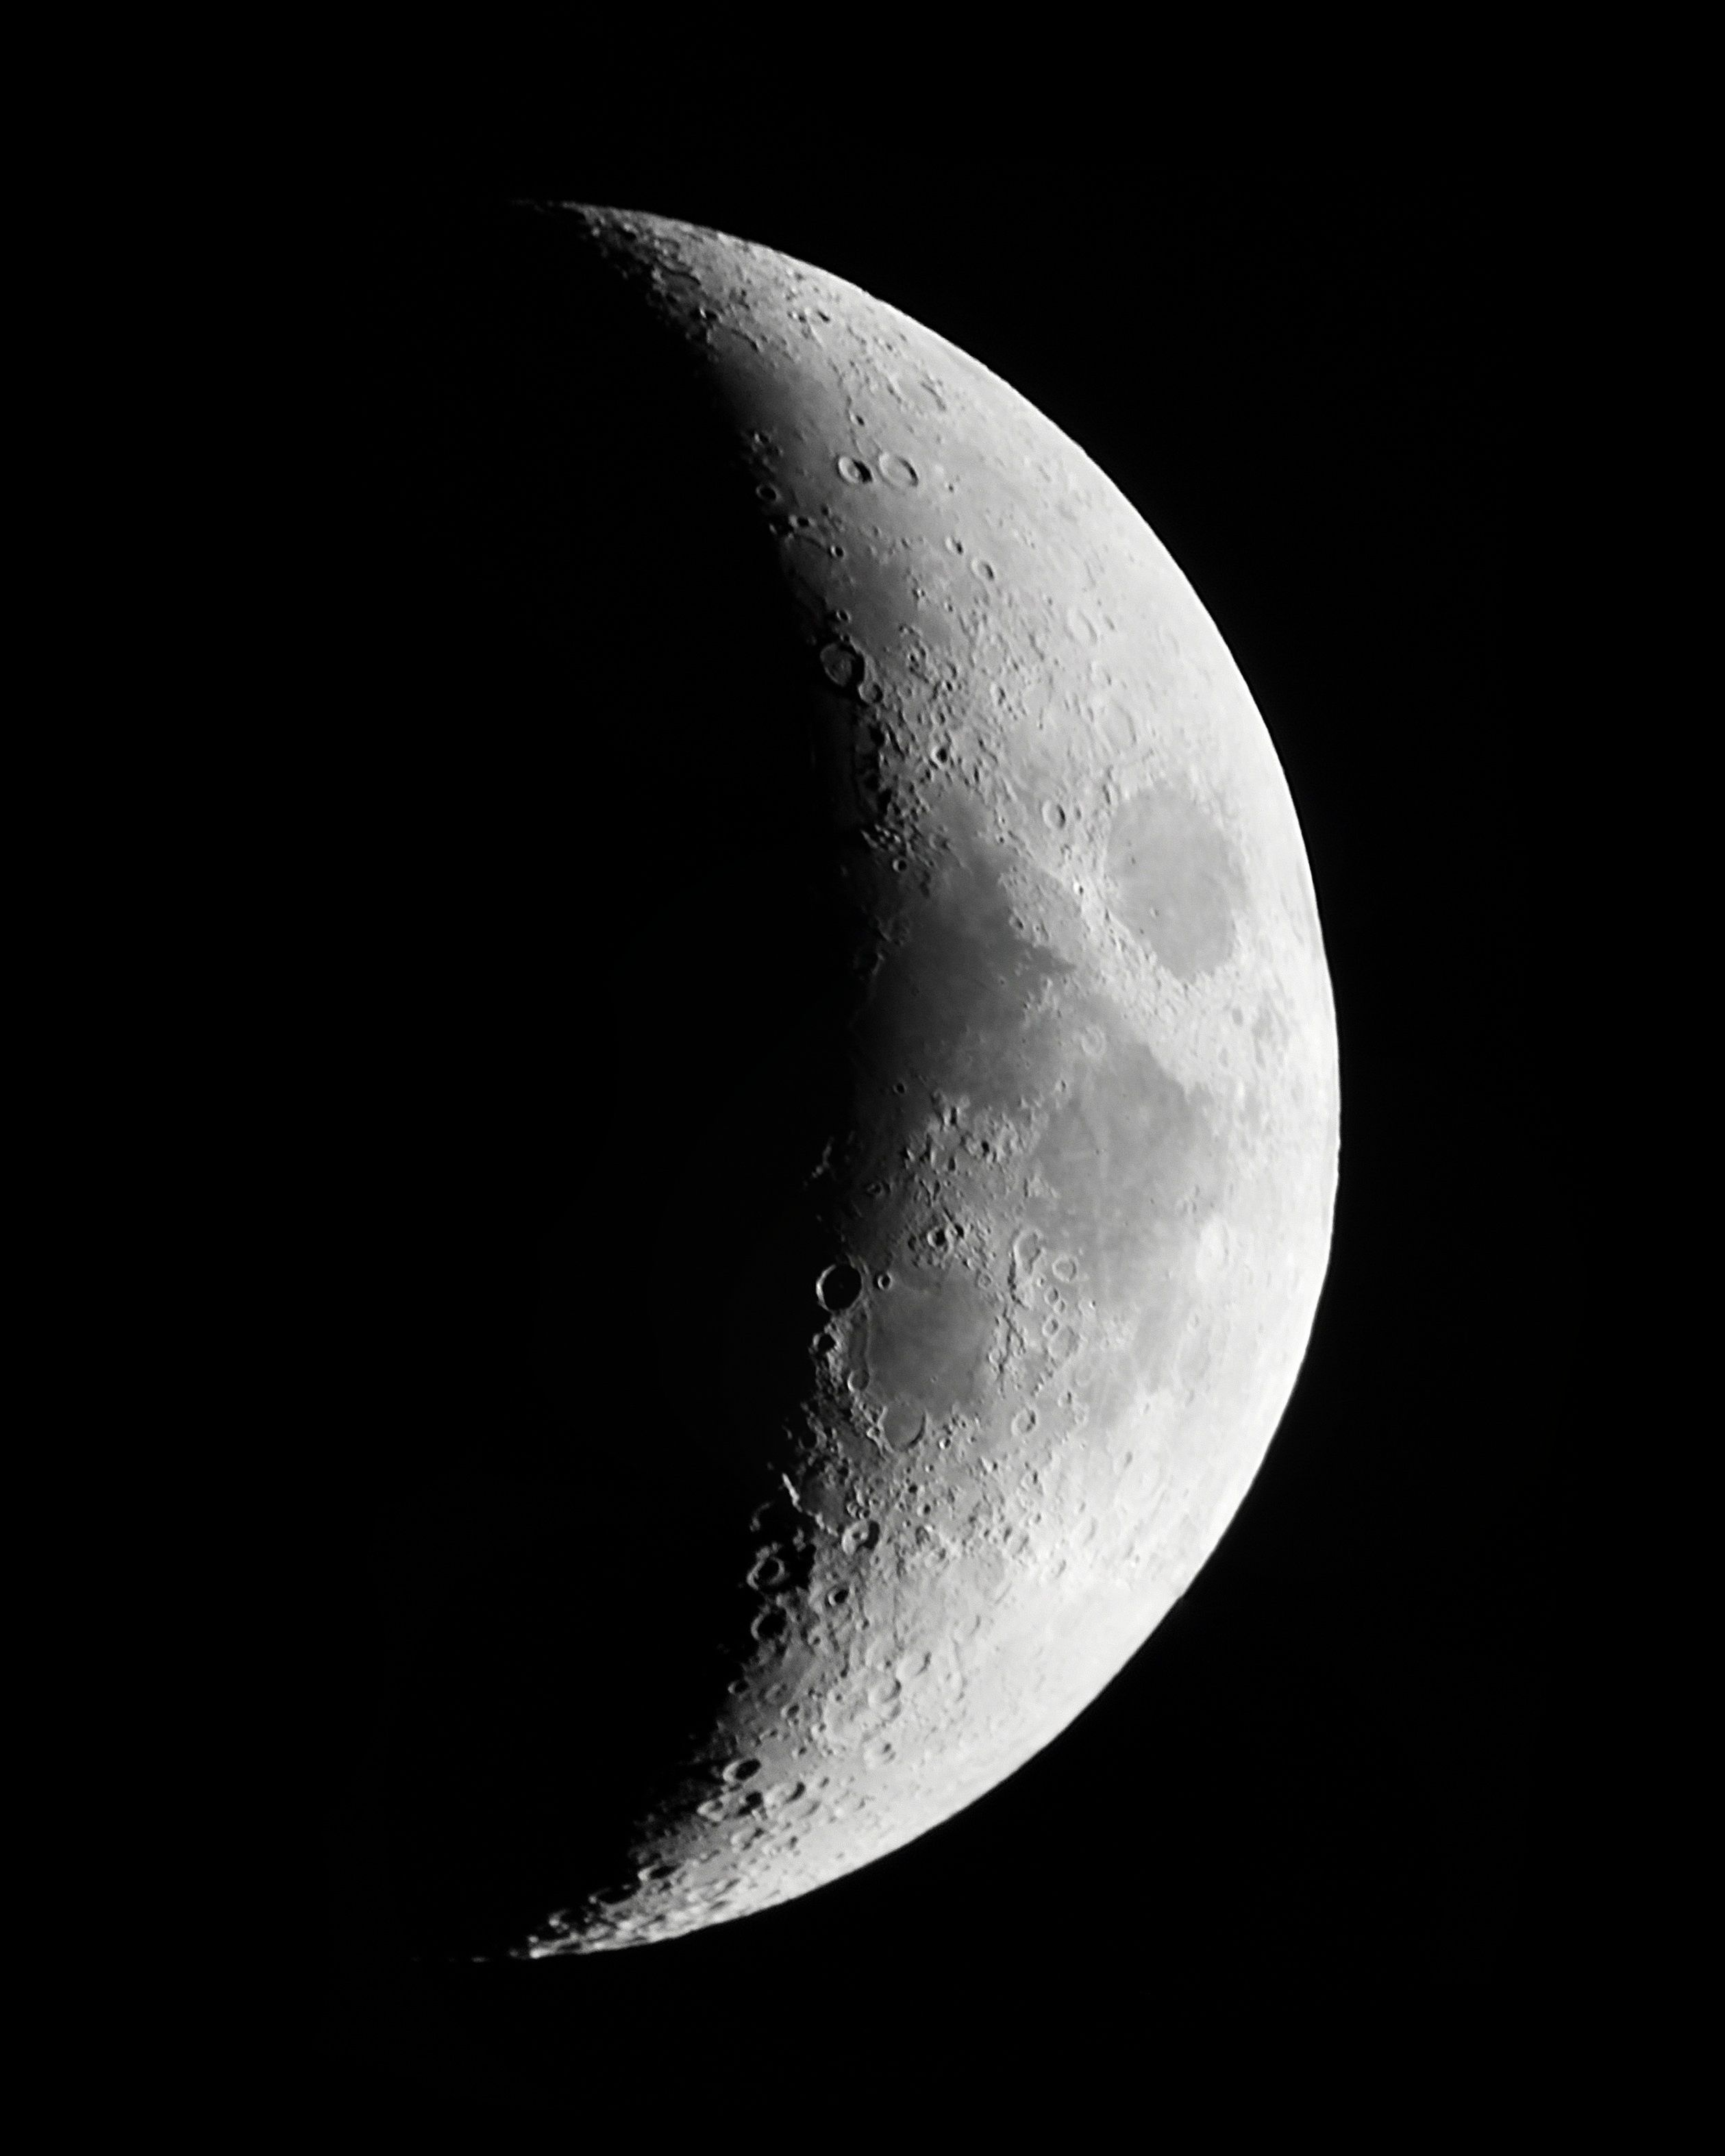 Waxing Crescent Moon | Astronomy Images at Orion Telescopes